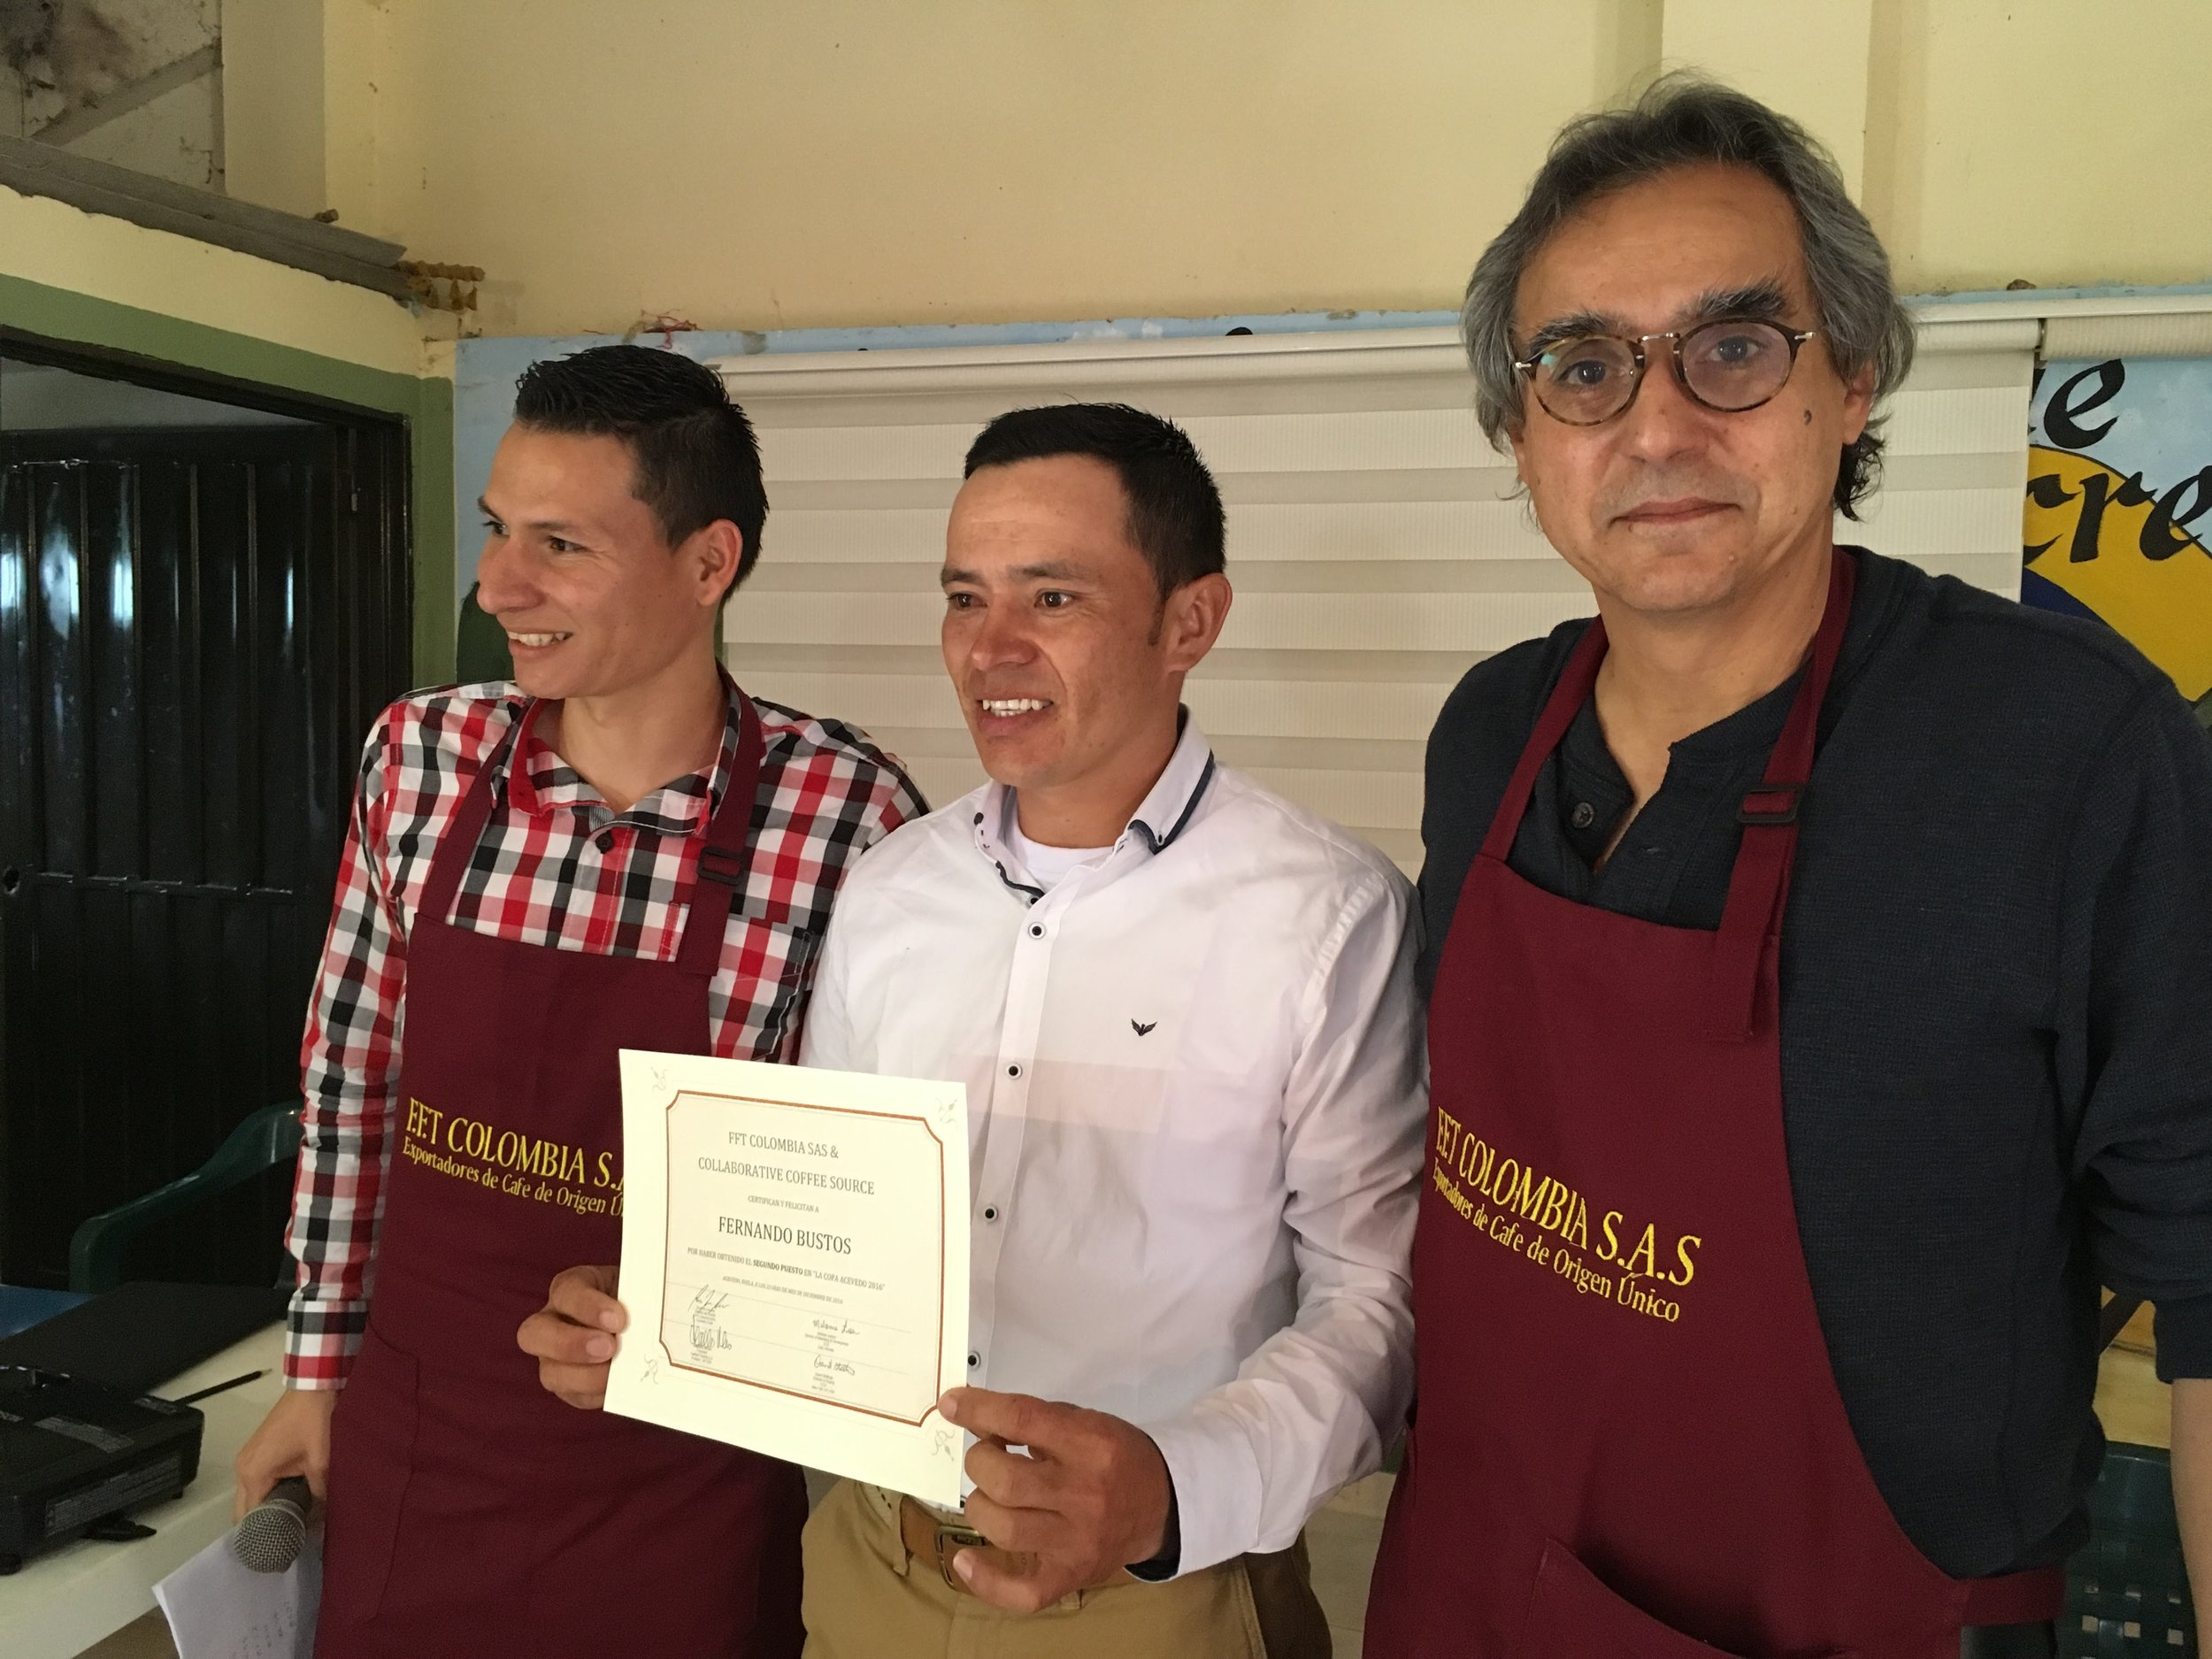 Left to right Eduardo Urquina of Fairfield Trading, Miller Bustos collecting the certificate for his brother Fernando Bustos, and Alejandro Renjifo of Fairfield Trading.